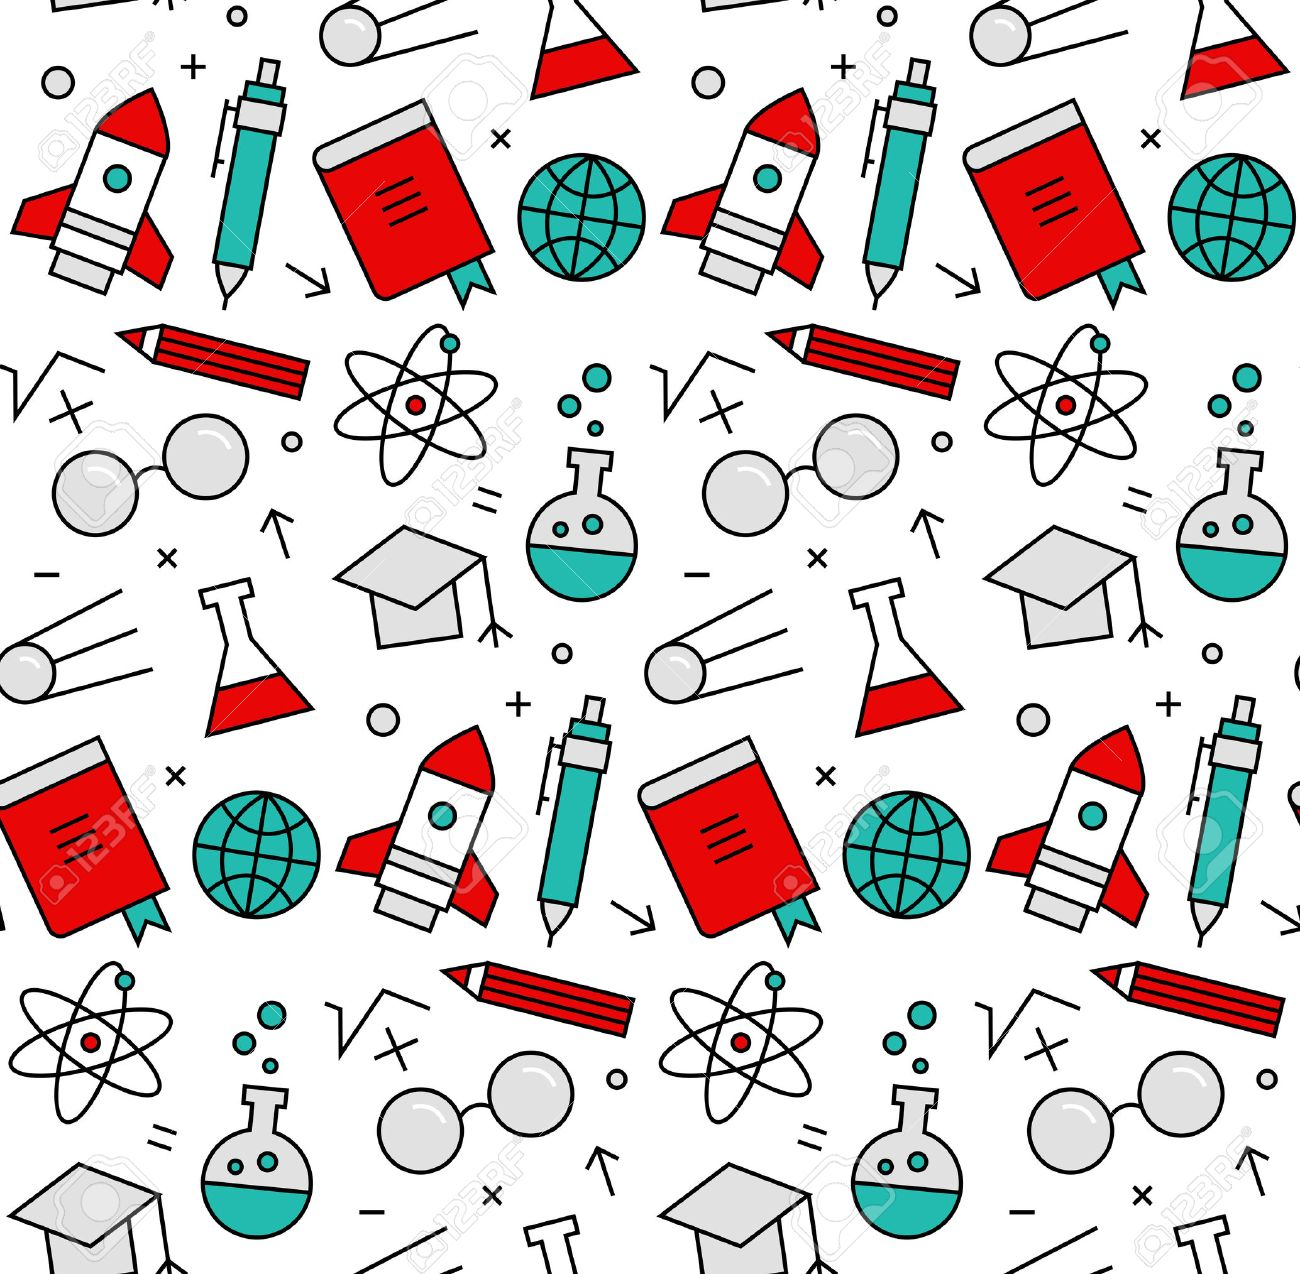 Modern line icons seamless pattern texture of rocket science study and learning, chemistry research, laboratory experiment. Flat design graphic, perfect for web background or print wrapping decoration. - 50569104